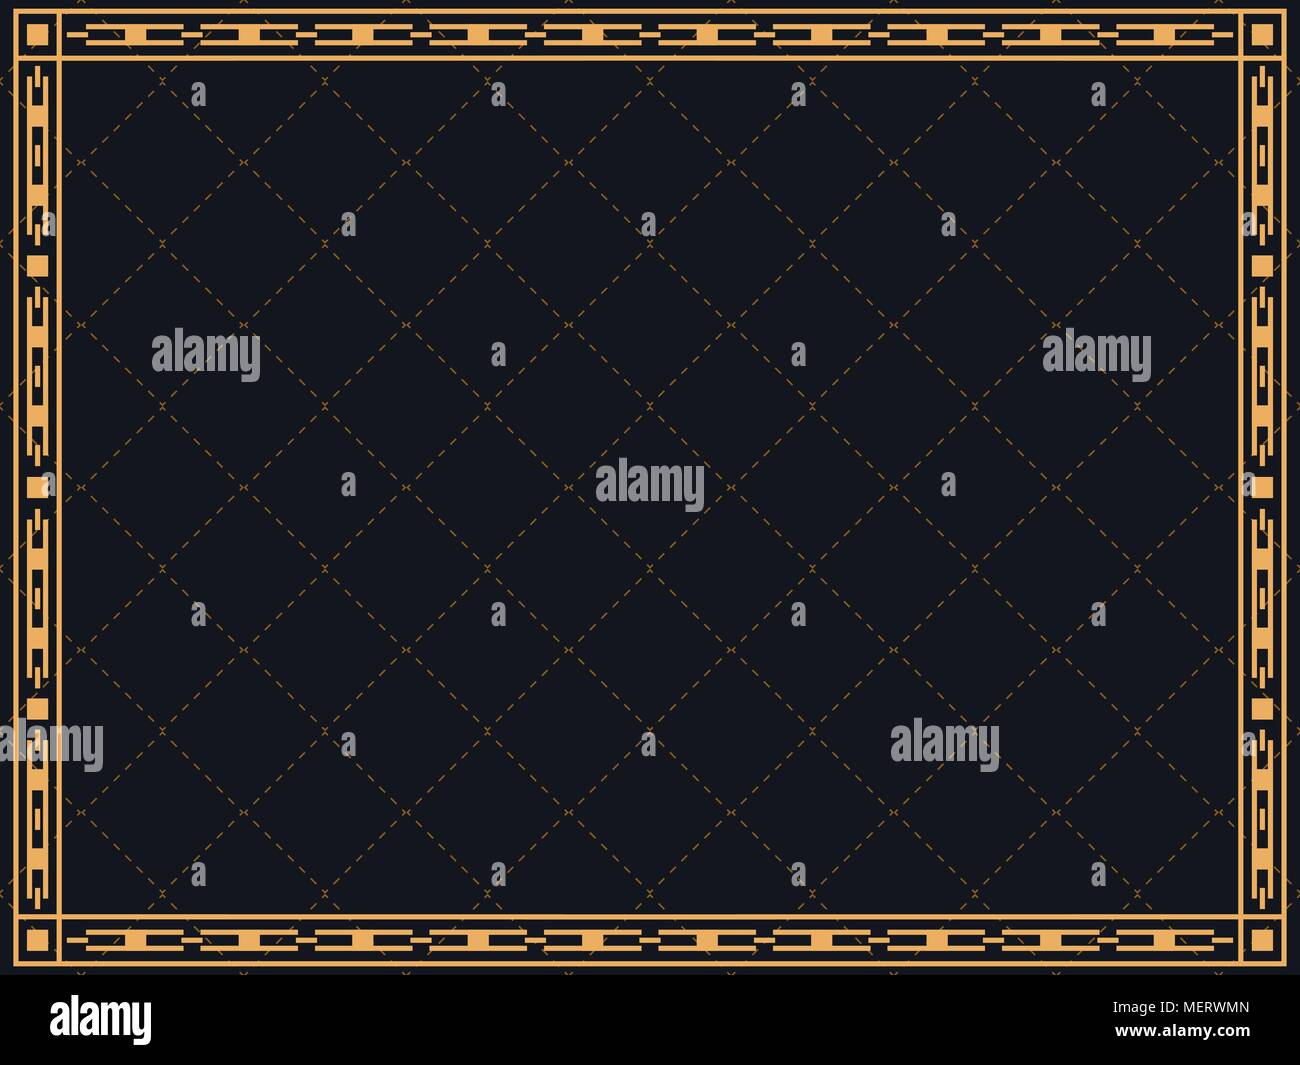 Poster Art Deco Stockfotos & Poster Art Deco Bilder - Seite 2 - Alamy